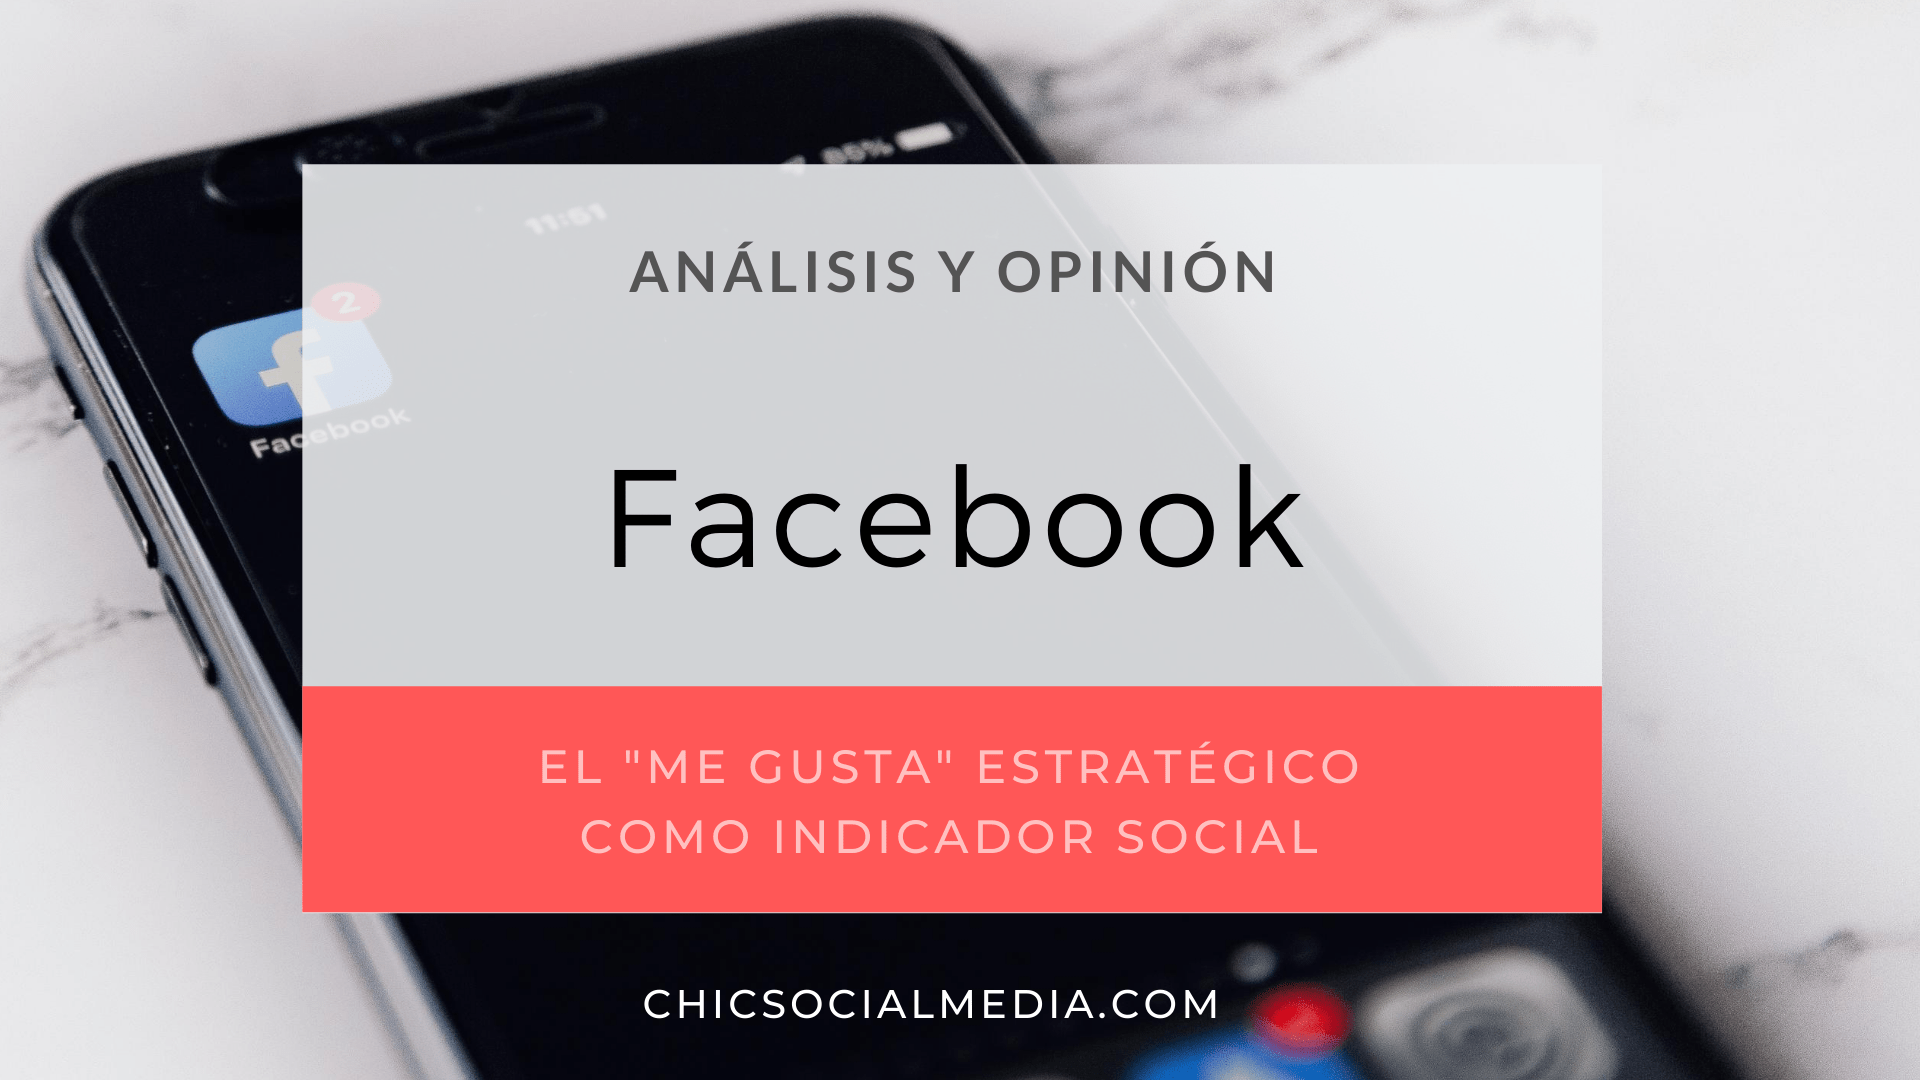 chicsocialmedia_blog_analisis_opinion_Estrategia_Facebook